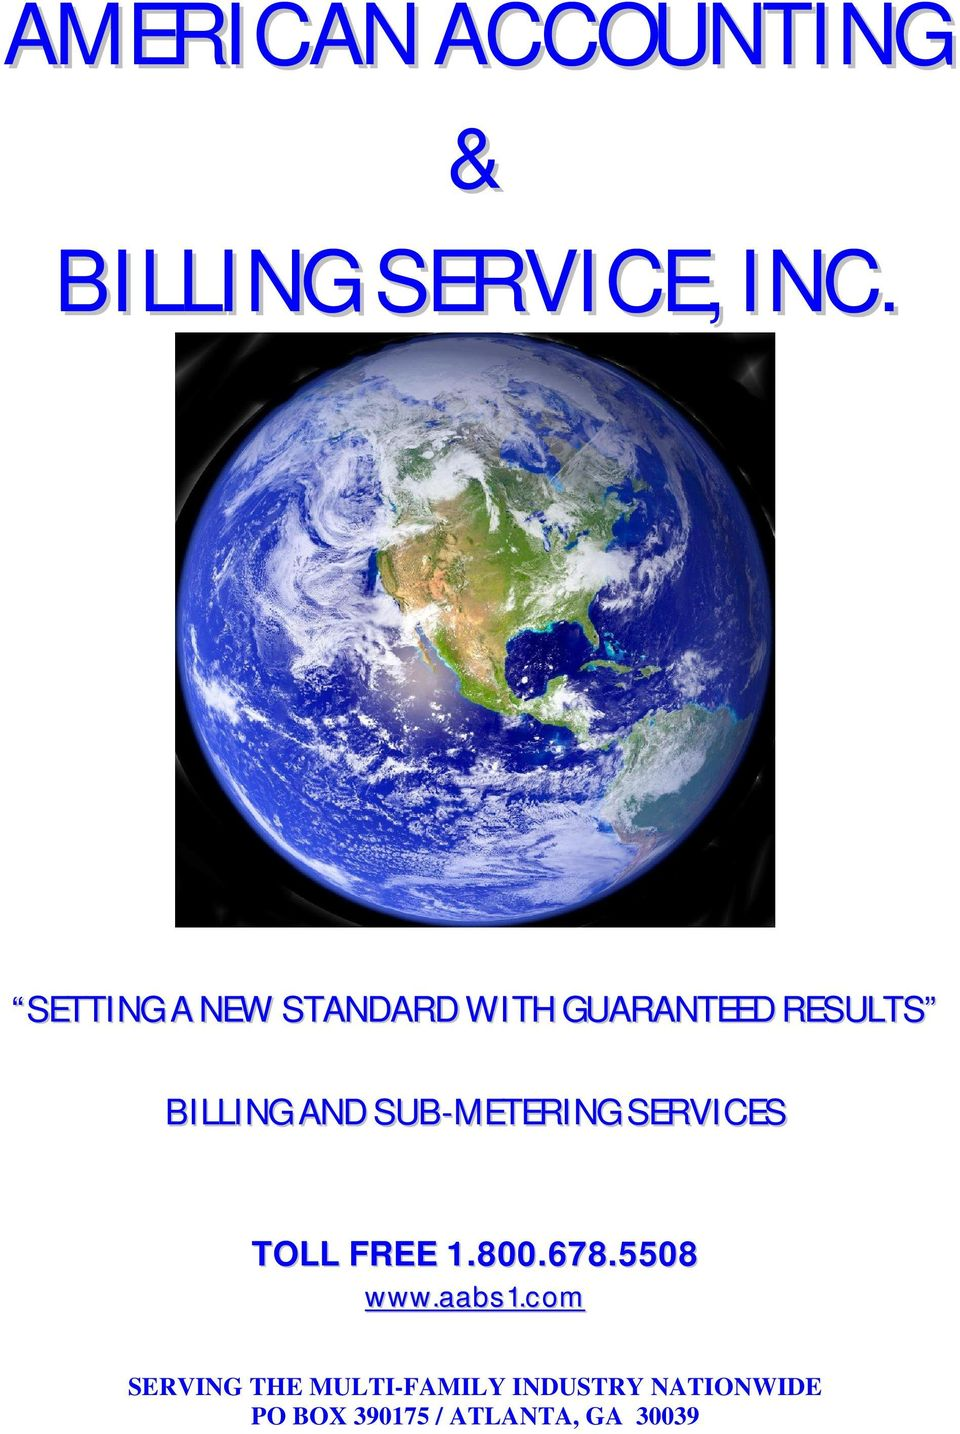 SUB-METERING SERVICES TOLL FREE 1.800.678.5508 www.aabs1.